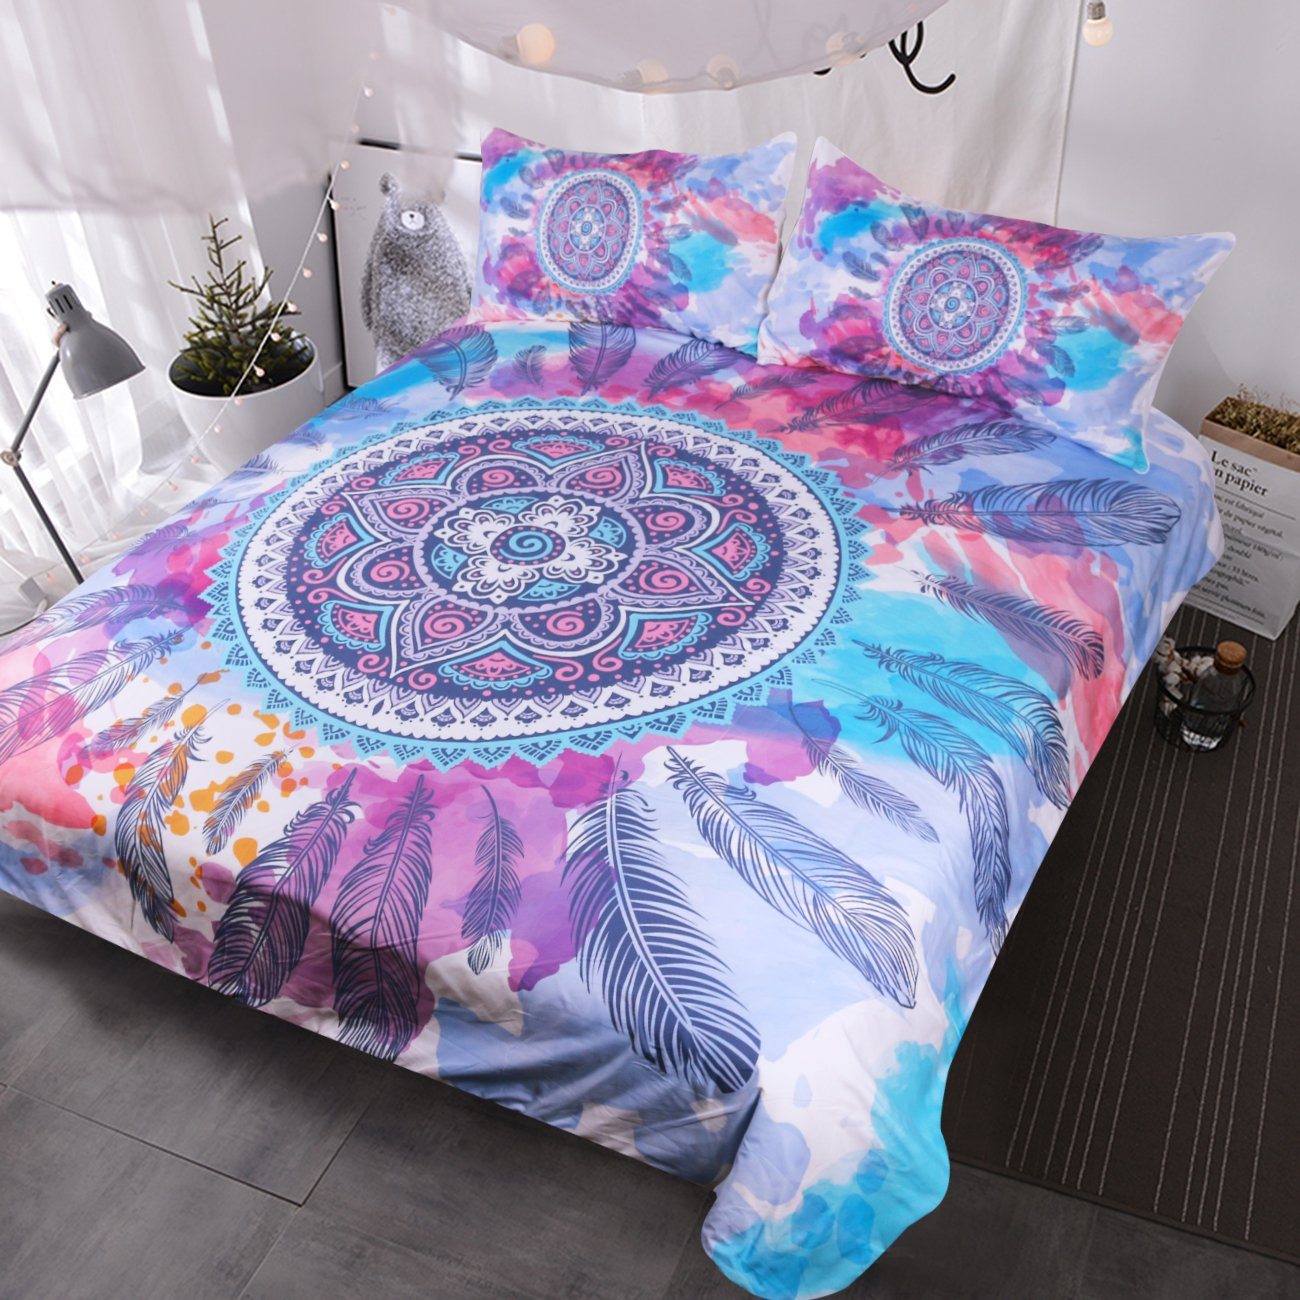 Blessliving Psychedelic Bedding Mandala Feathers Bed Set Pink Blue Purple Colored Hippy Duvet Cover Bedclothes (King)